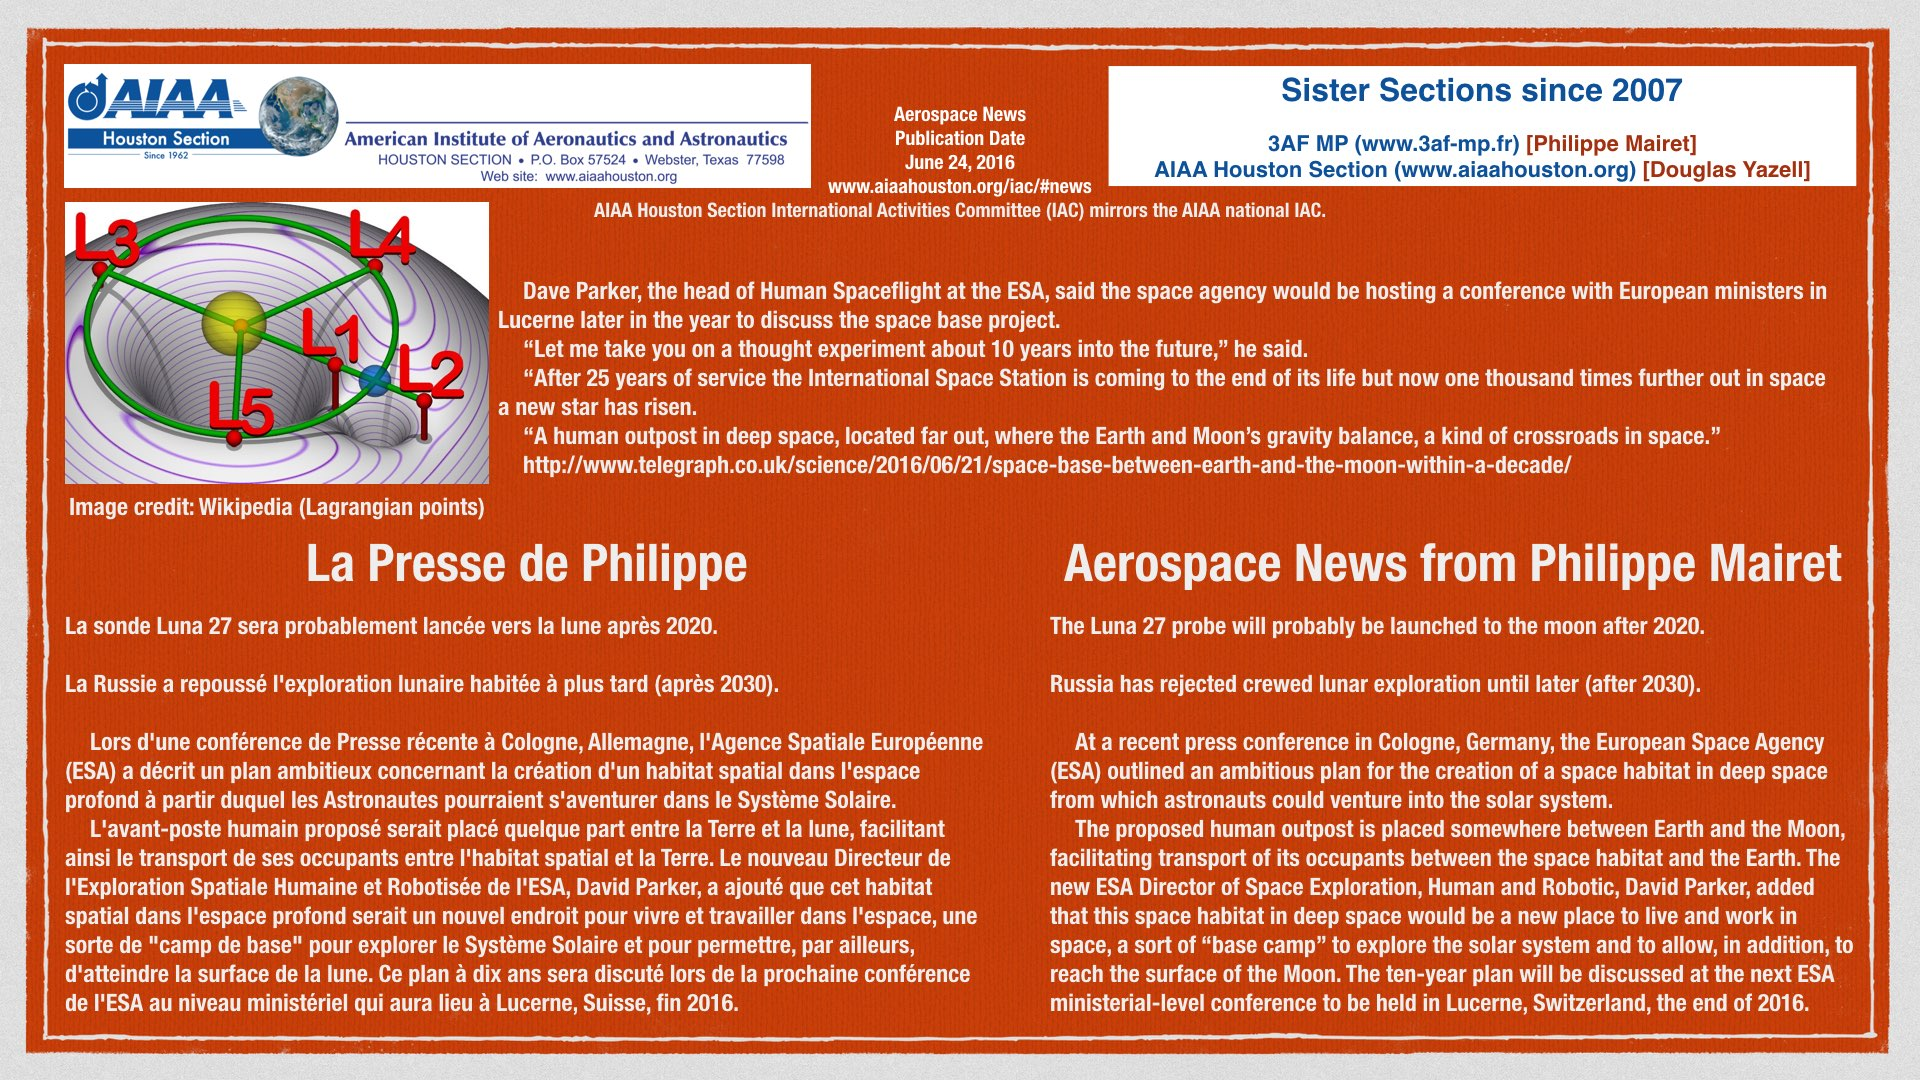 Above: Aerospace news articles, including the ESA announcement about a deep space habitat. (Click to zoom.)